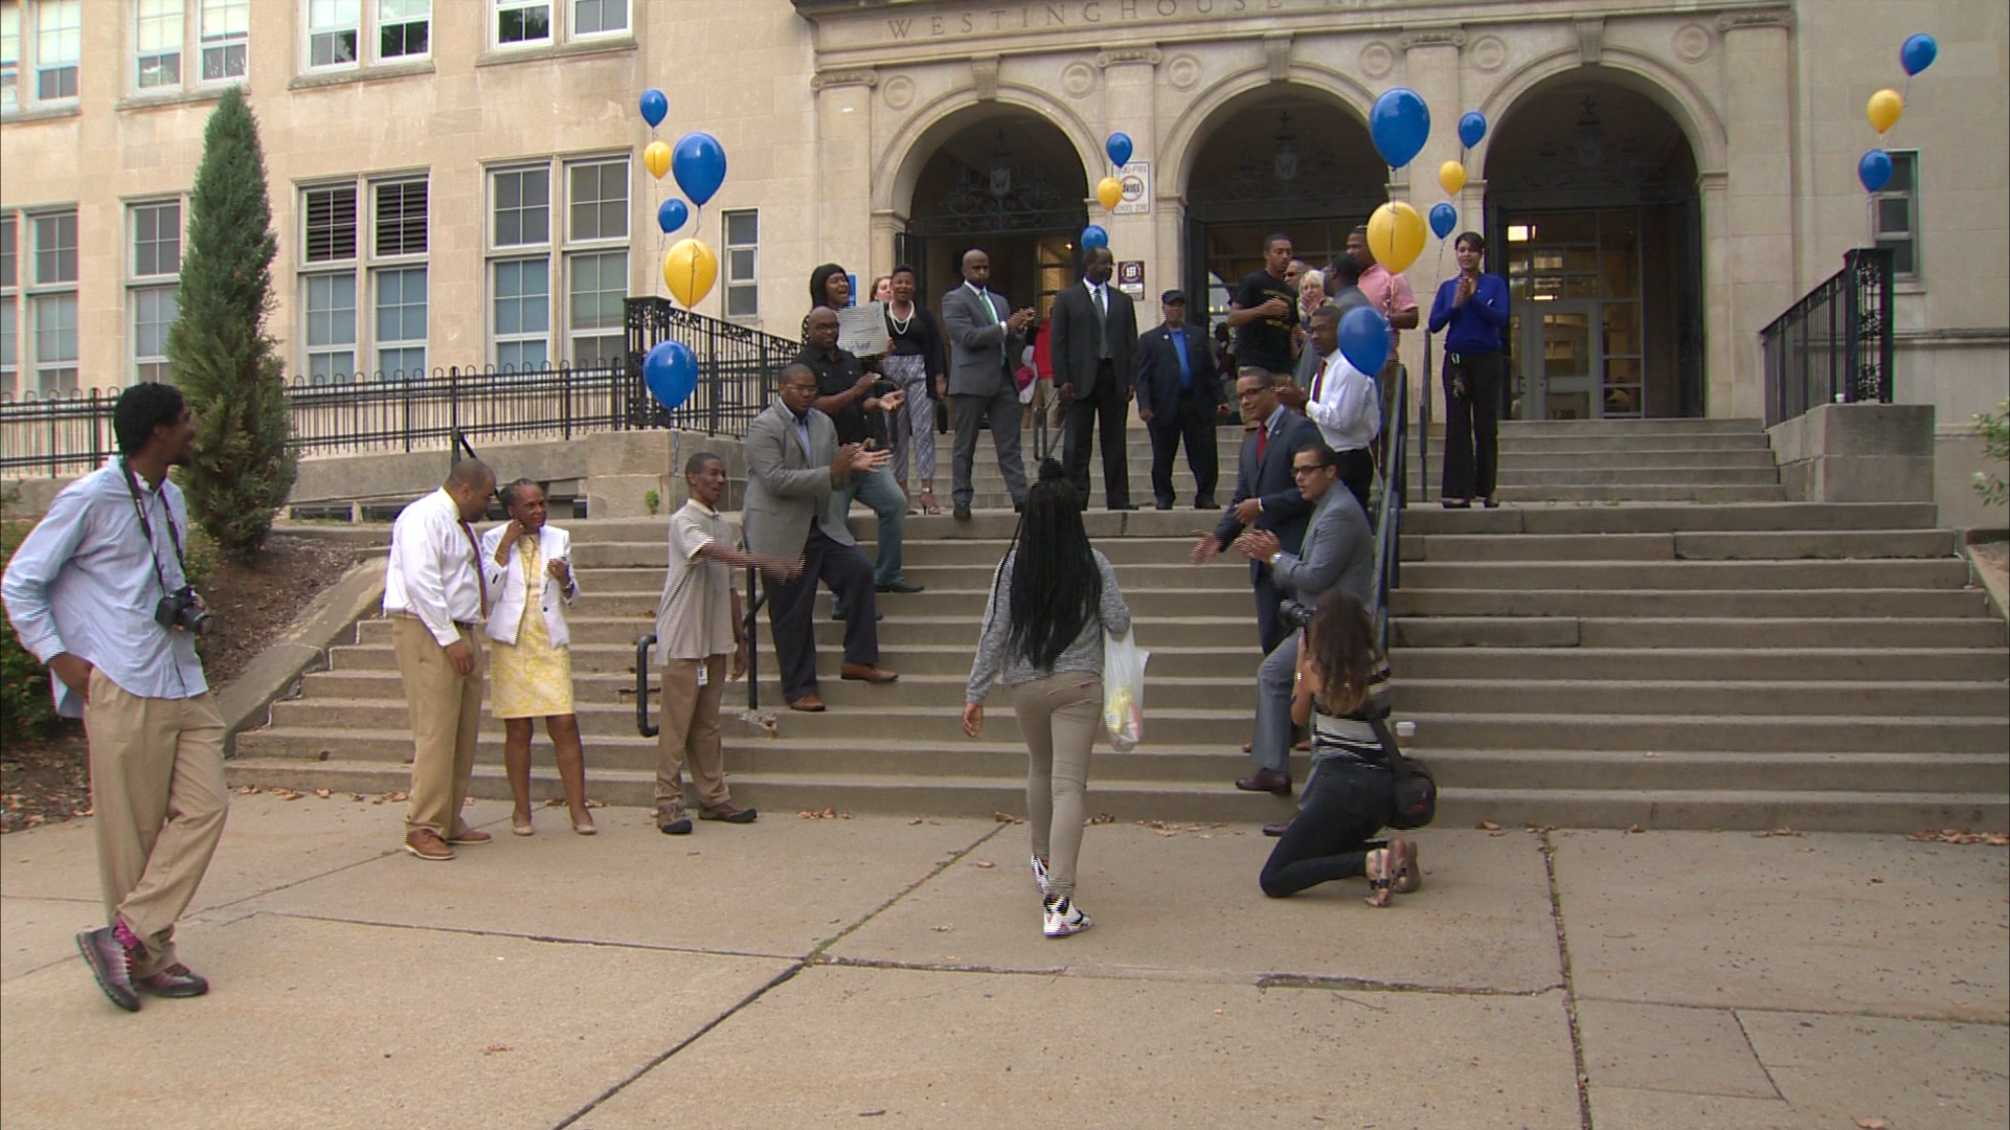 Westinghouse High School students are welcomed as they arrive for the first day of school.